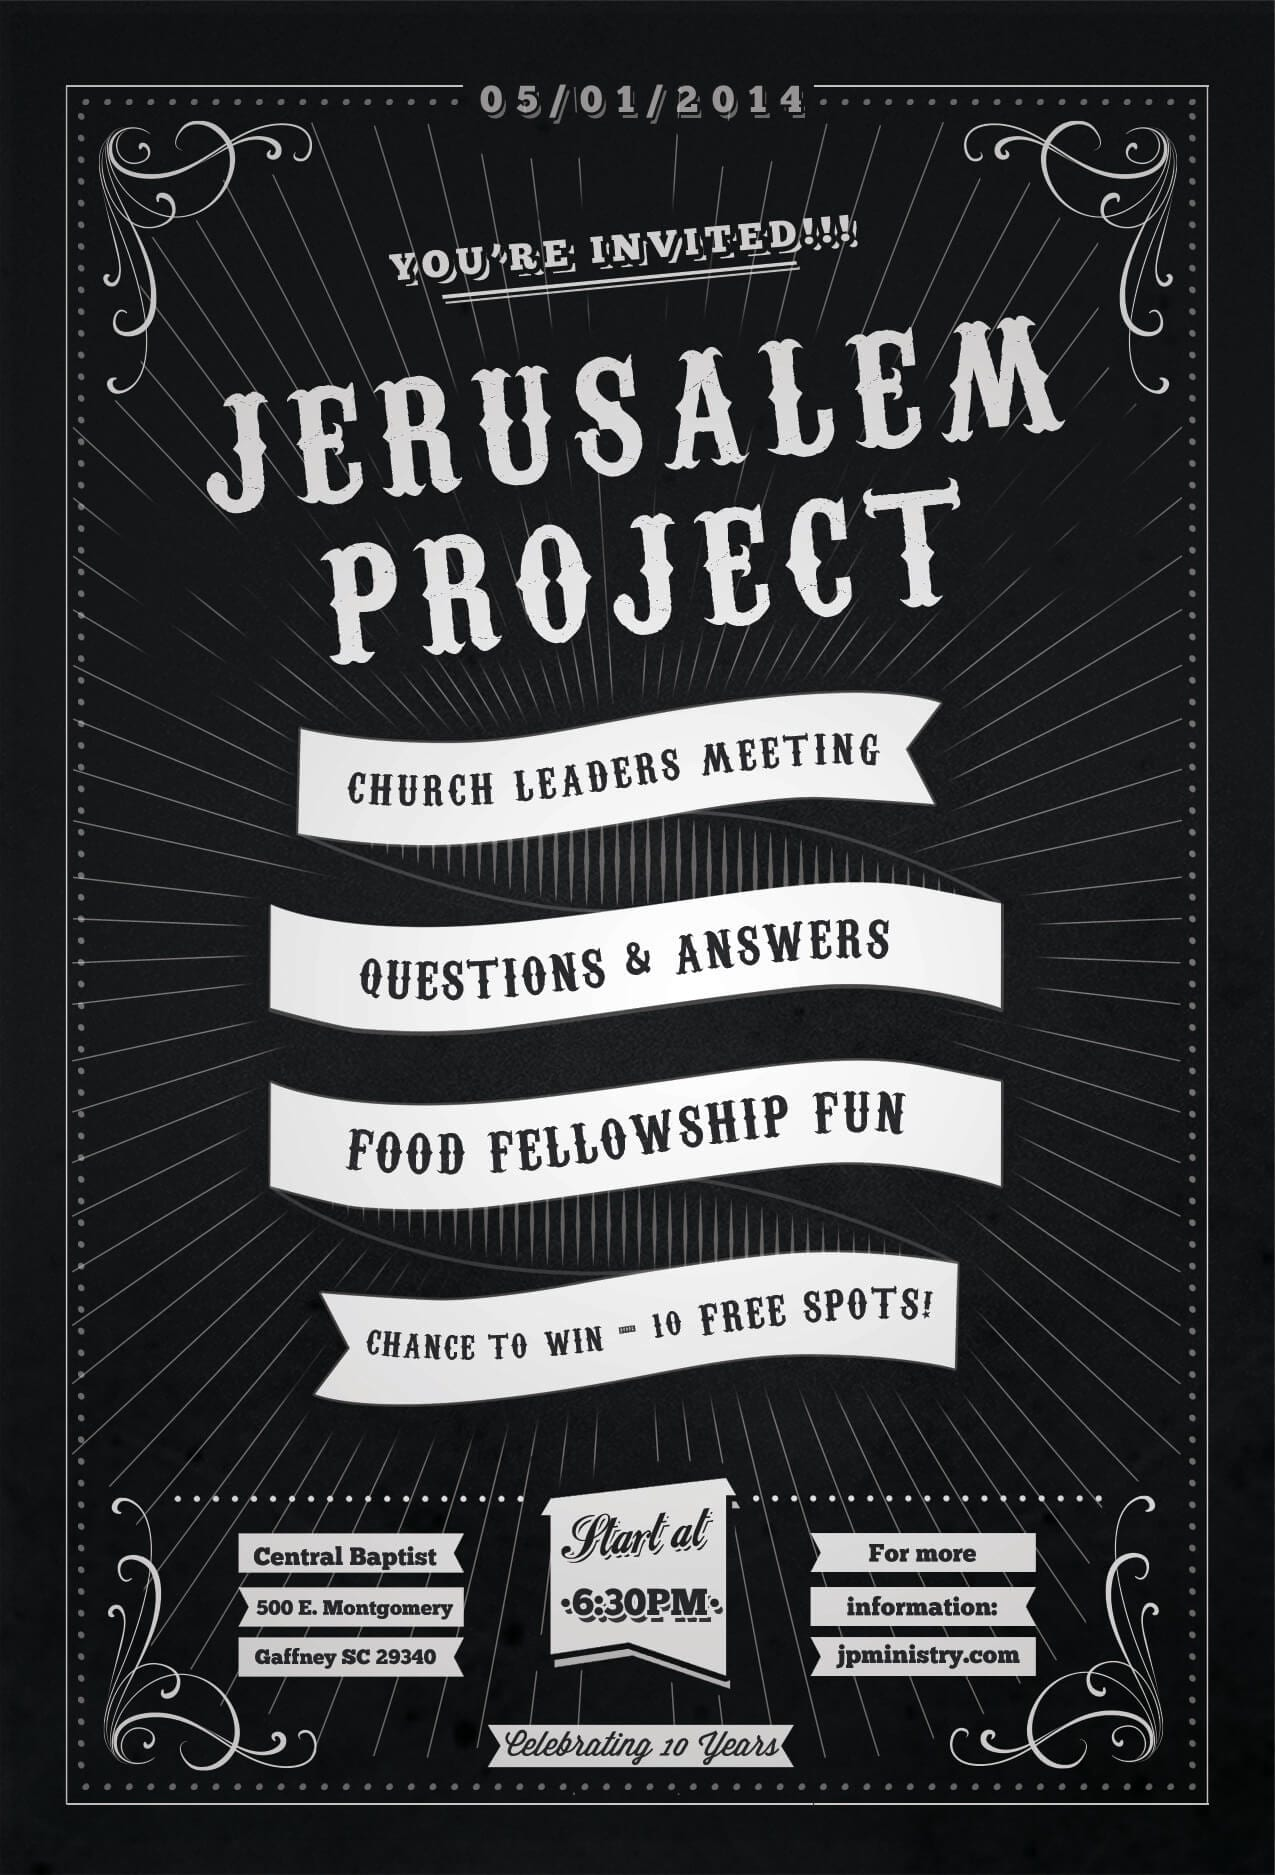 Jerusalem Project Event Postcard